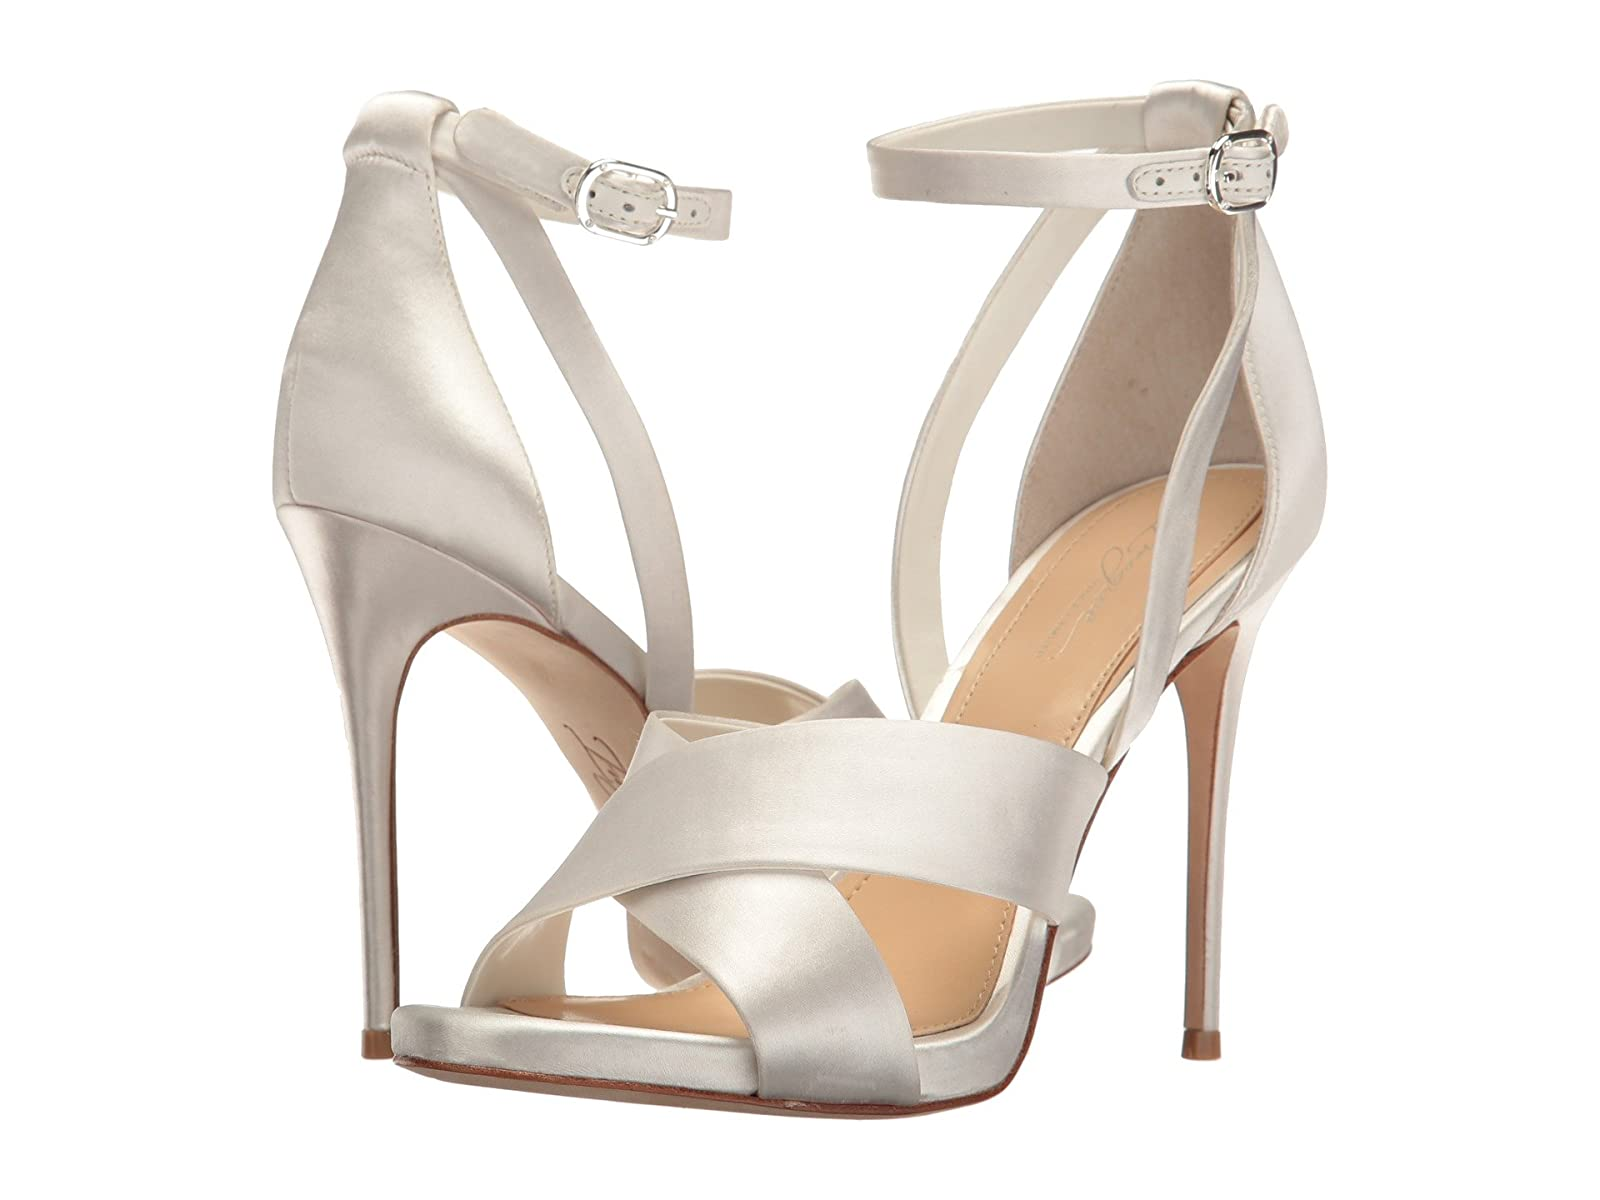 Imagine Selling Vince Camuto Dairren : Selling Imagine New Products :Man's/Woman's 662a71